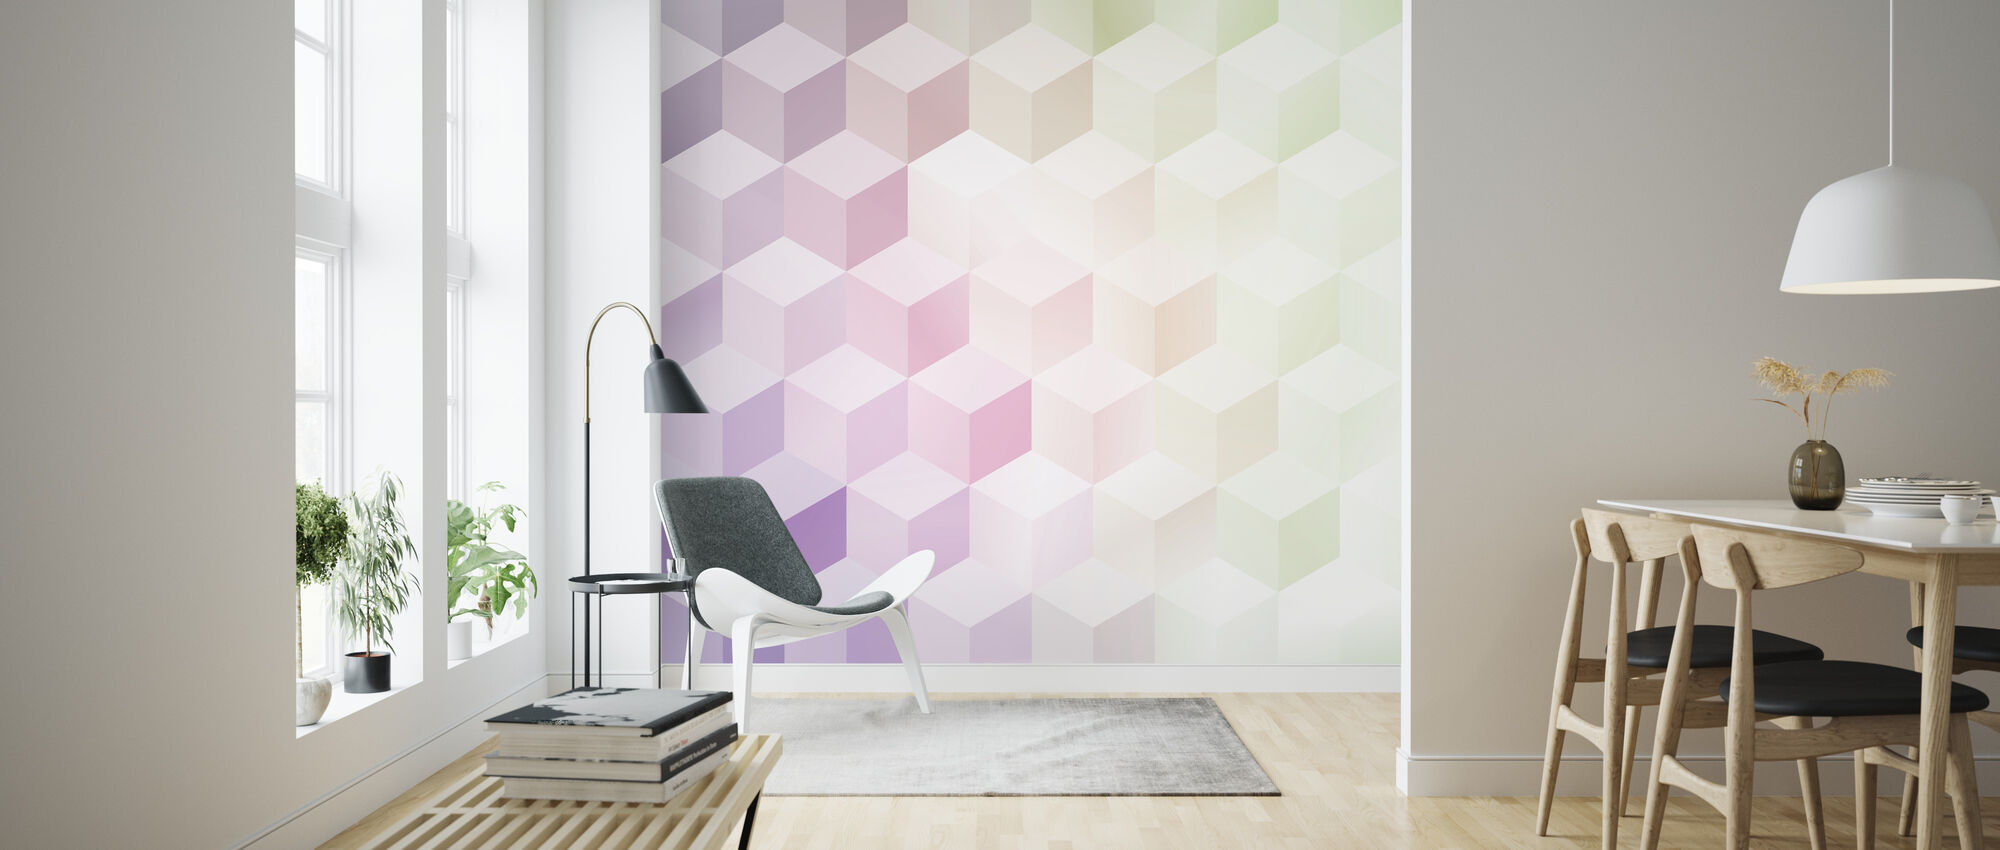 Cubes in Frosty Pastel - Wallpaper - Living Room